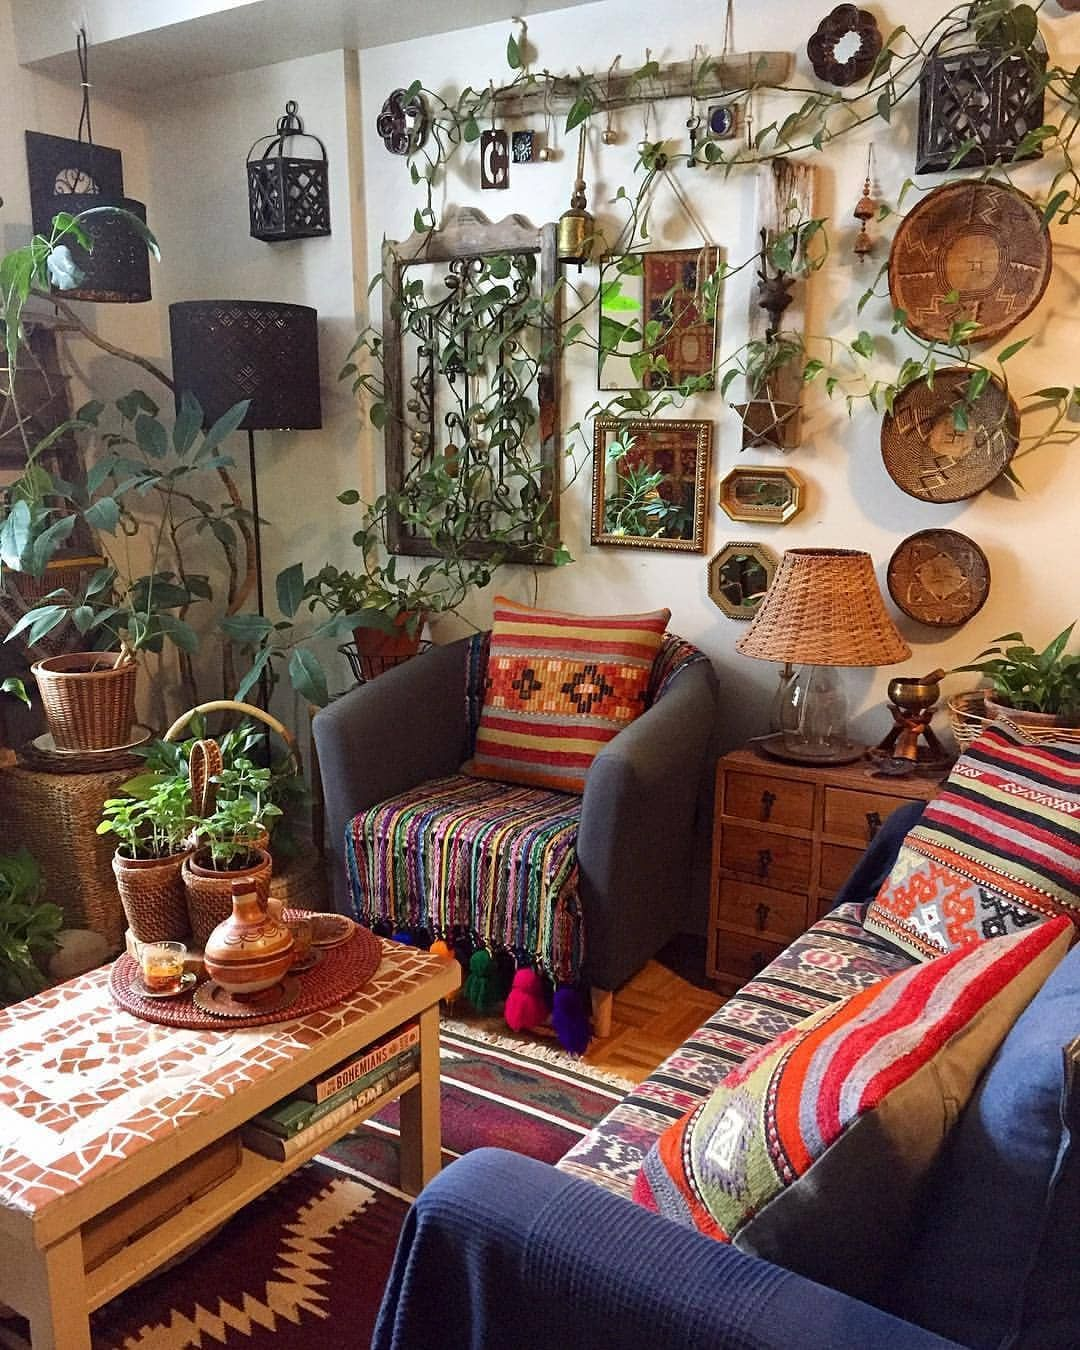 Credit Plantandwander Sharing Some Boho Jungle Vibes For This Saturday Morning Have A G Bohemian Living Room Decor Home Decor Bohemian Style Decor Jungle living room ideas